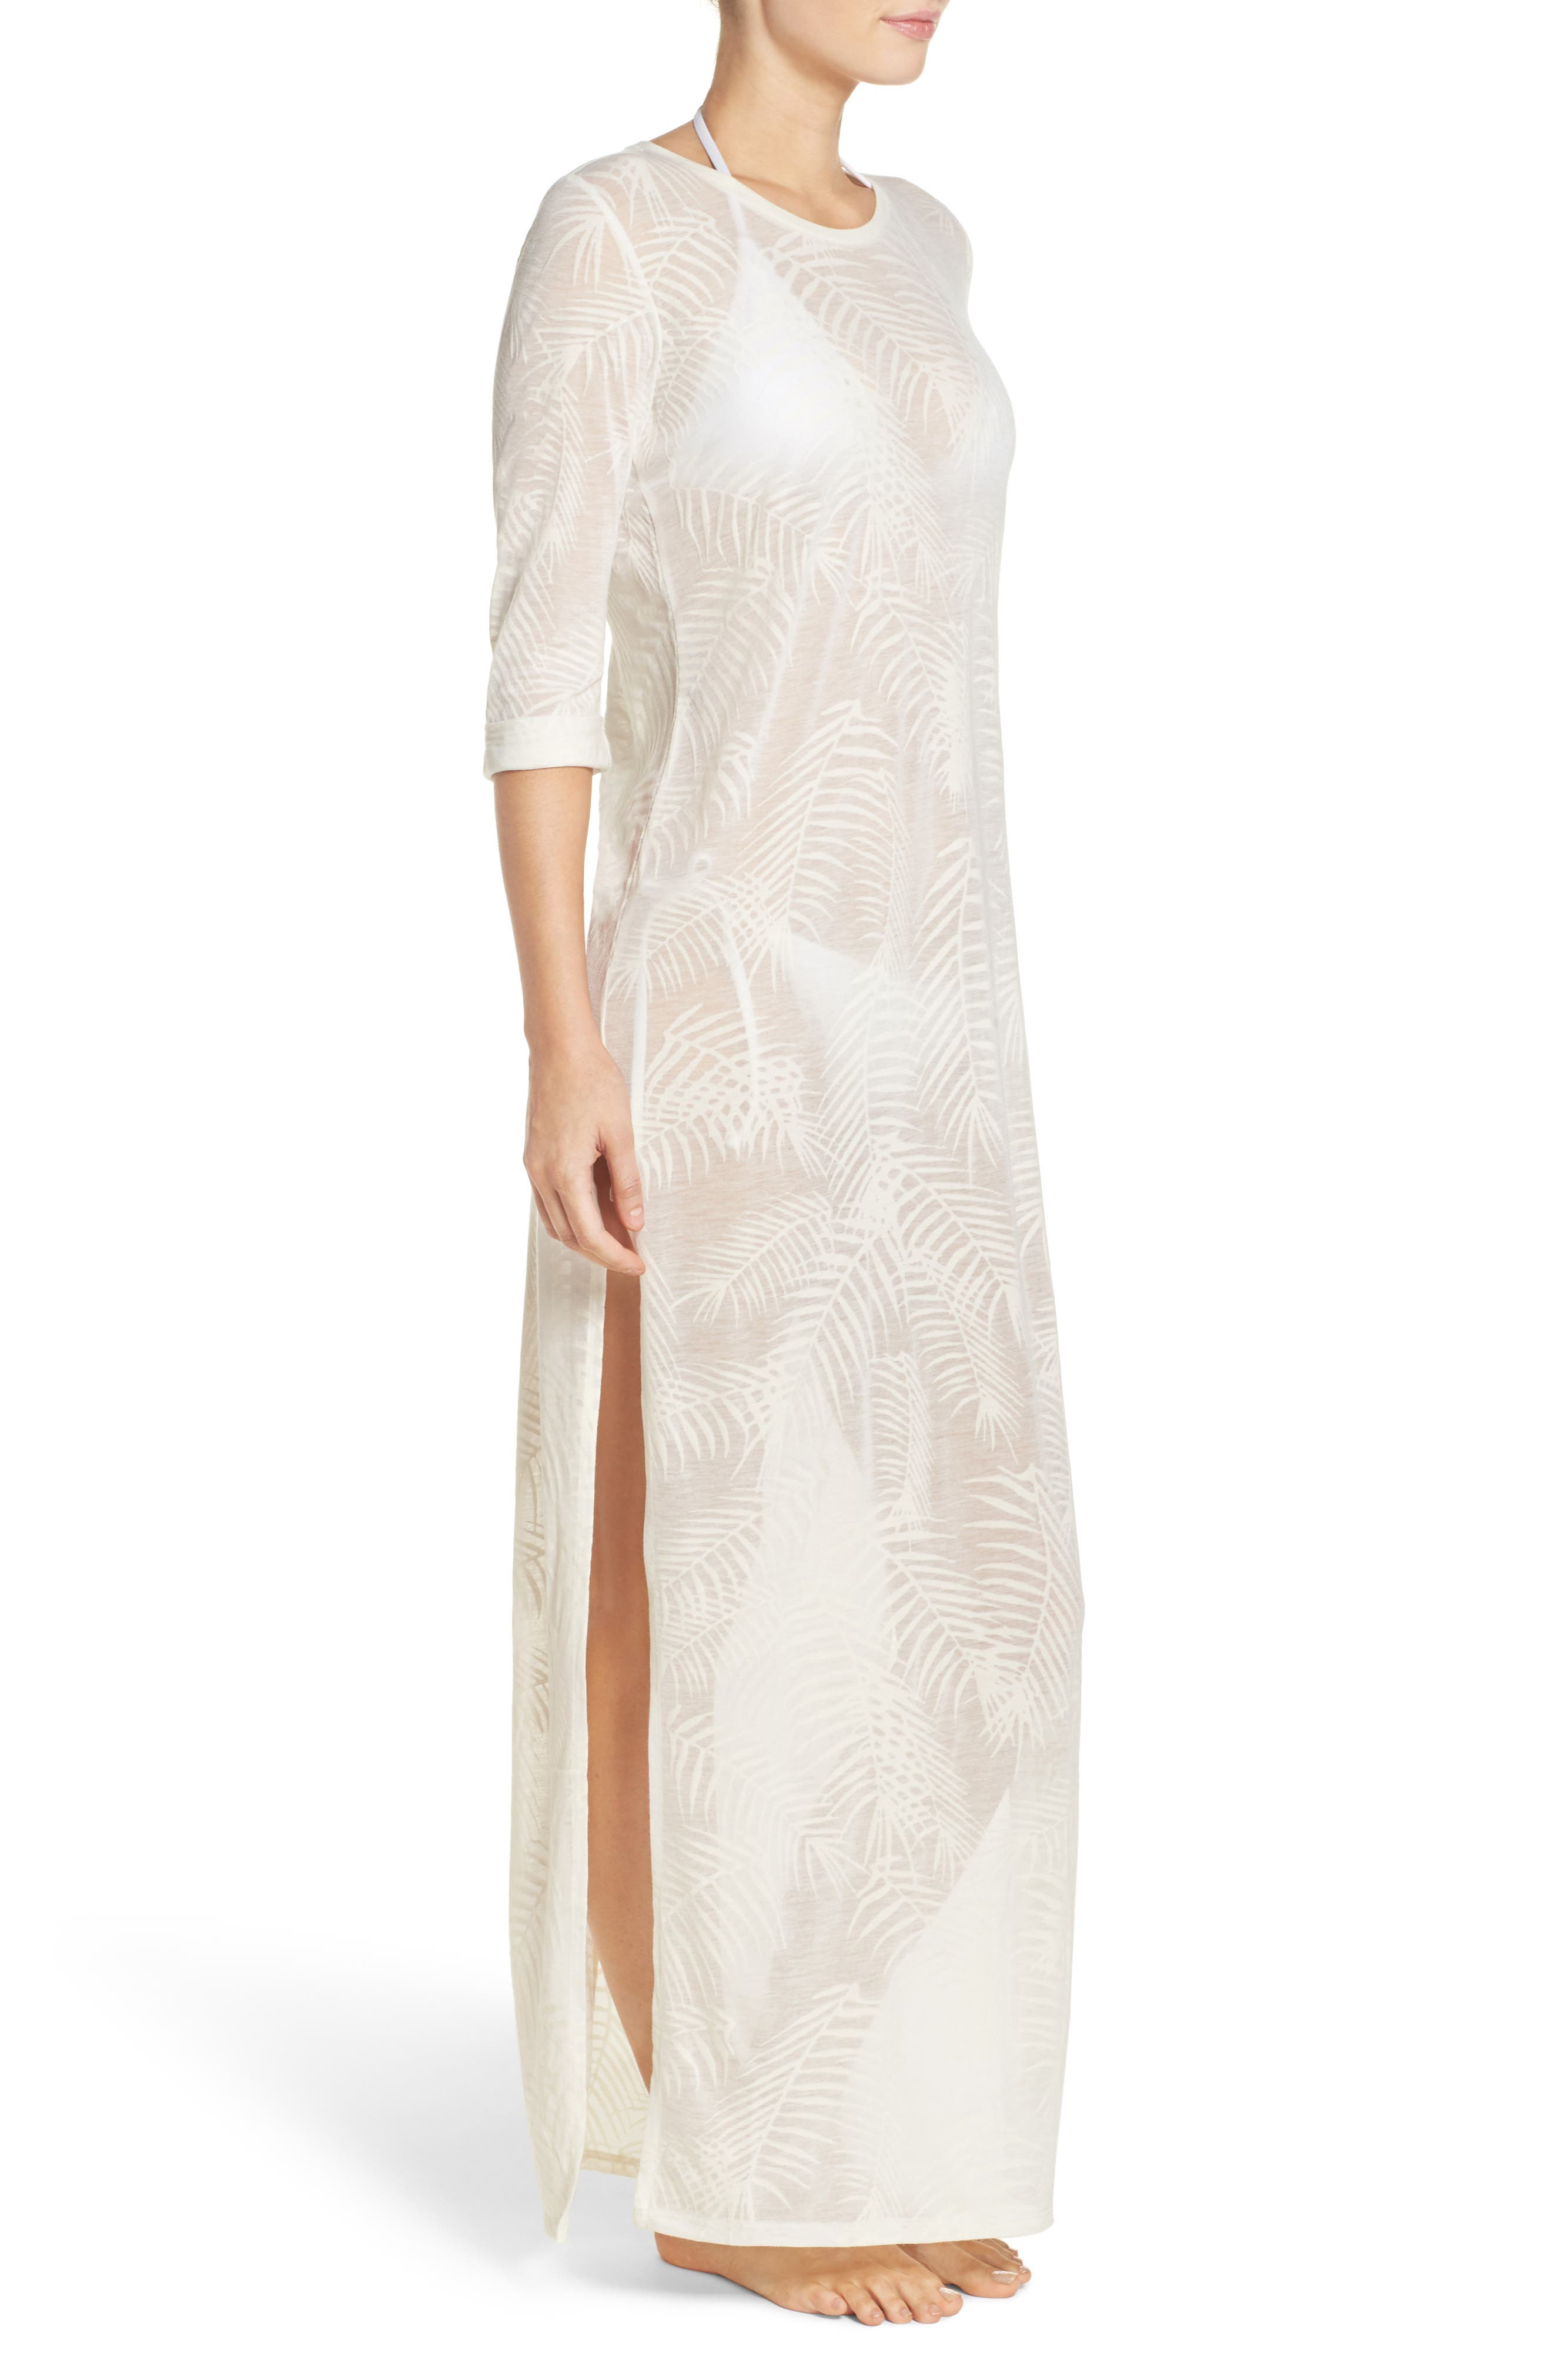 Finley Cover-Up Maxi Dress,                             Alternate thumbnail 3, color,                             100